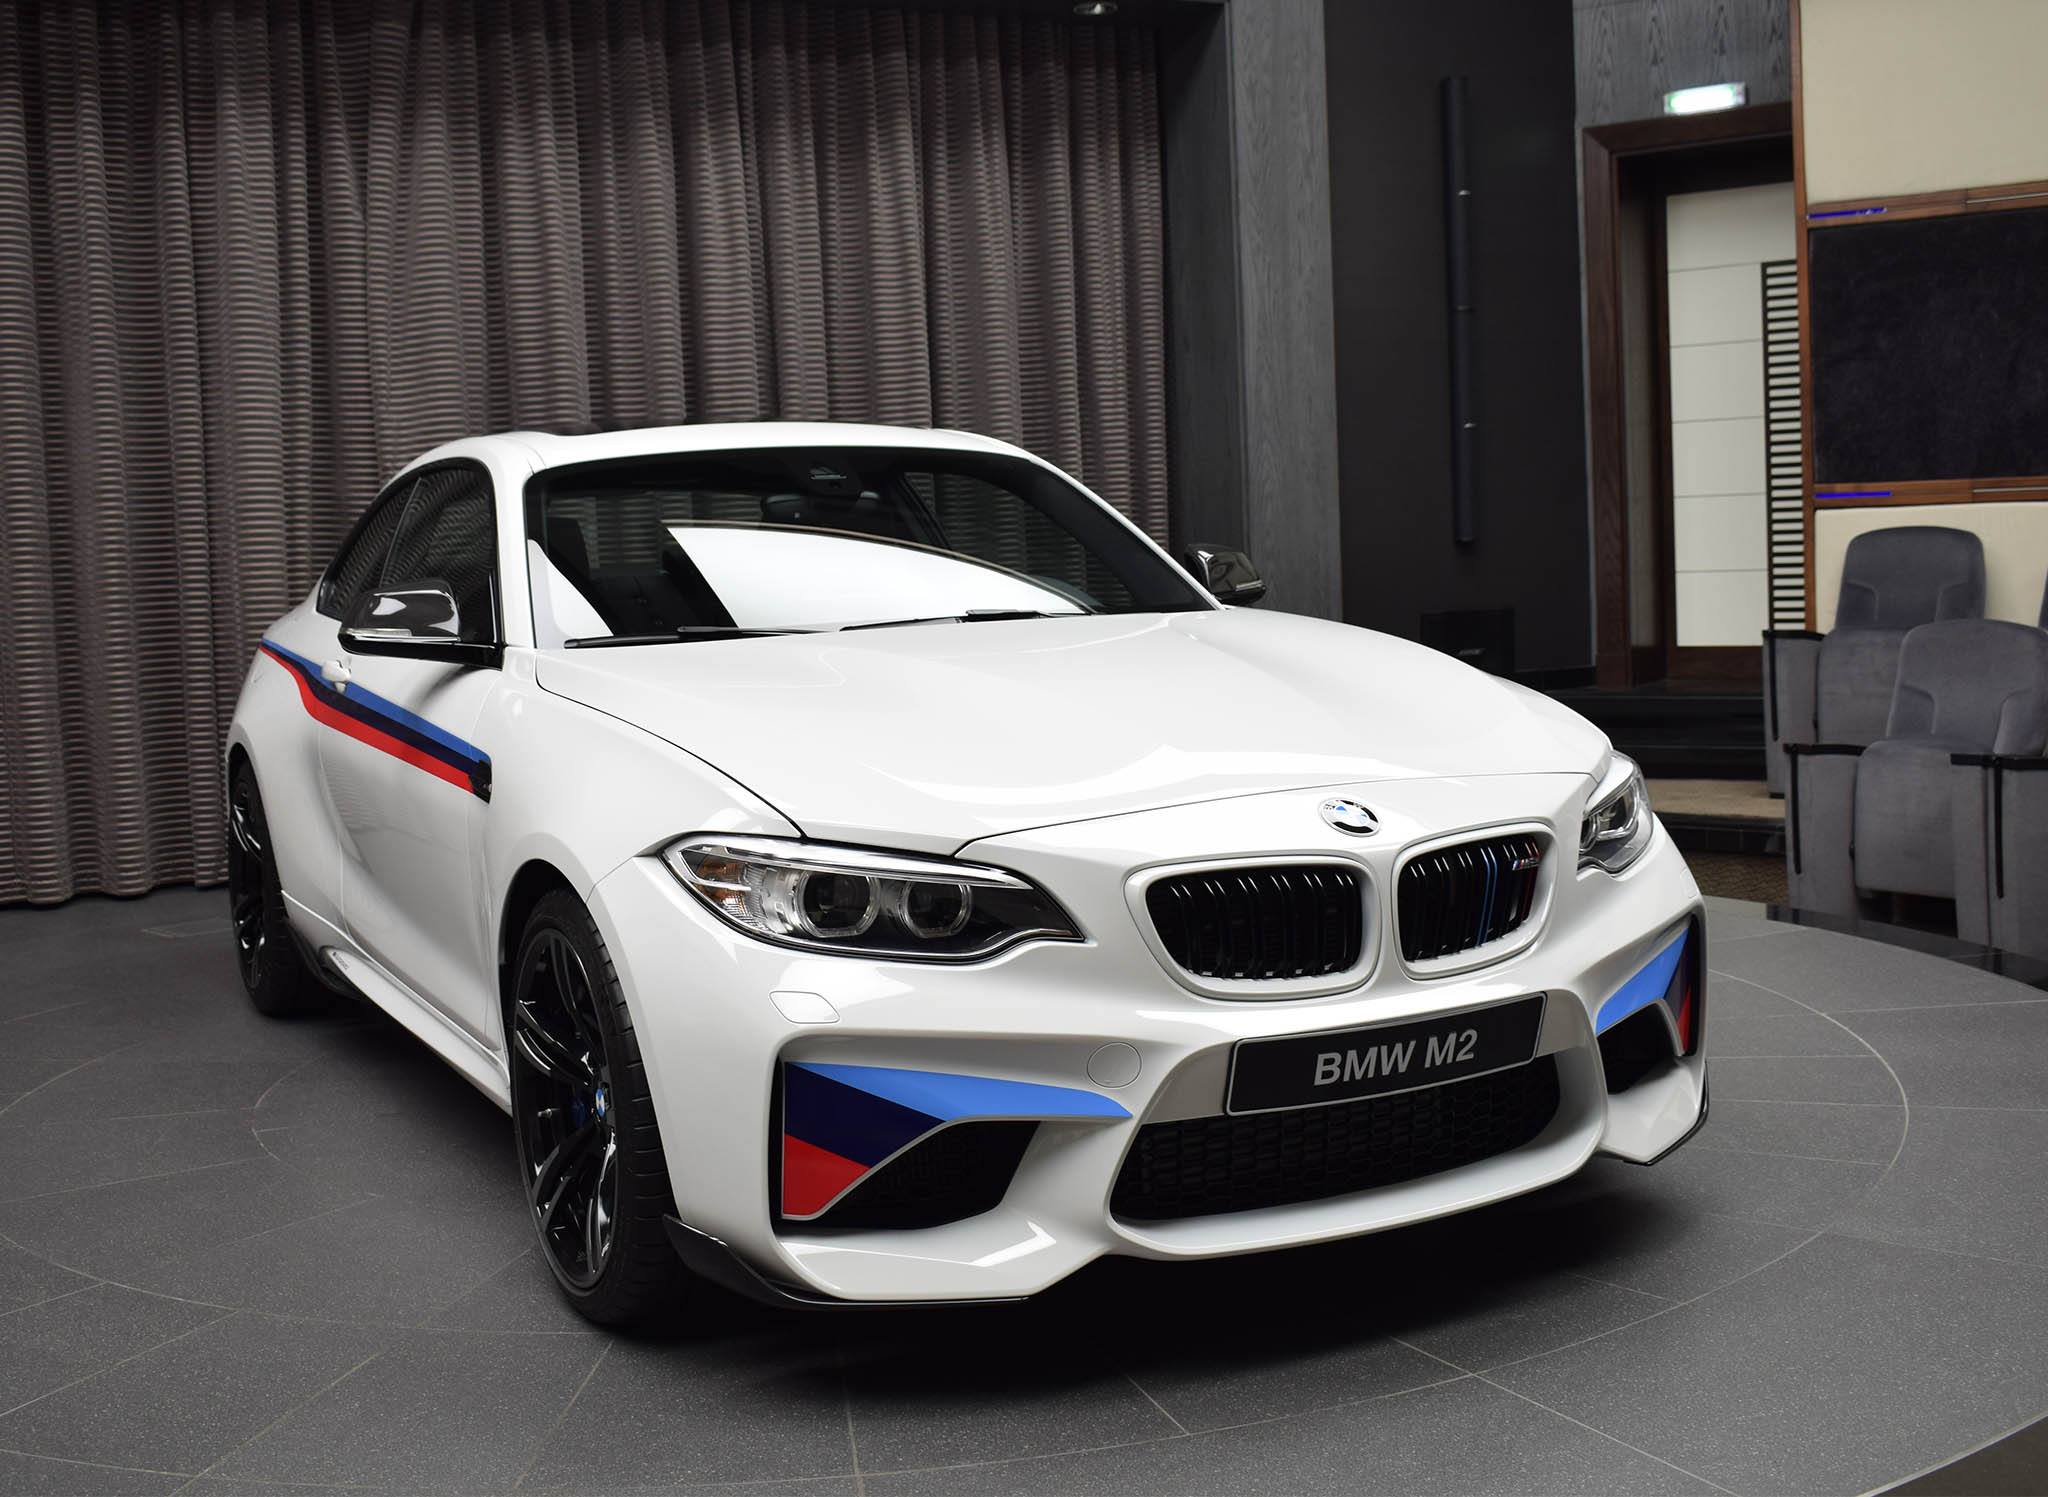 BMW M2 with M Performance parts (8)